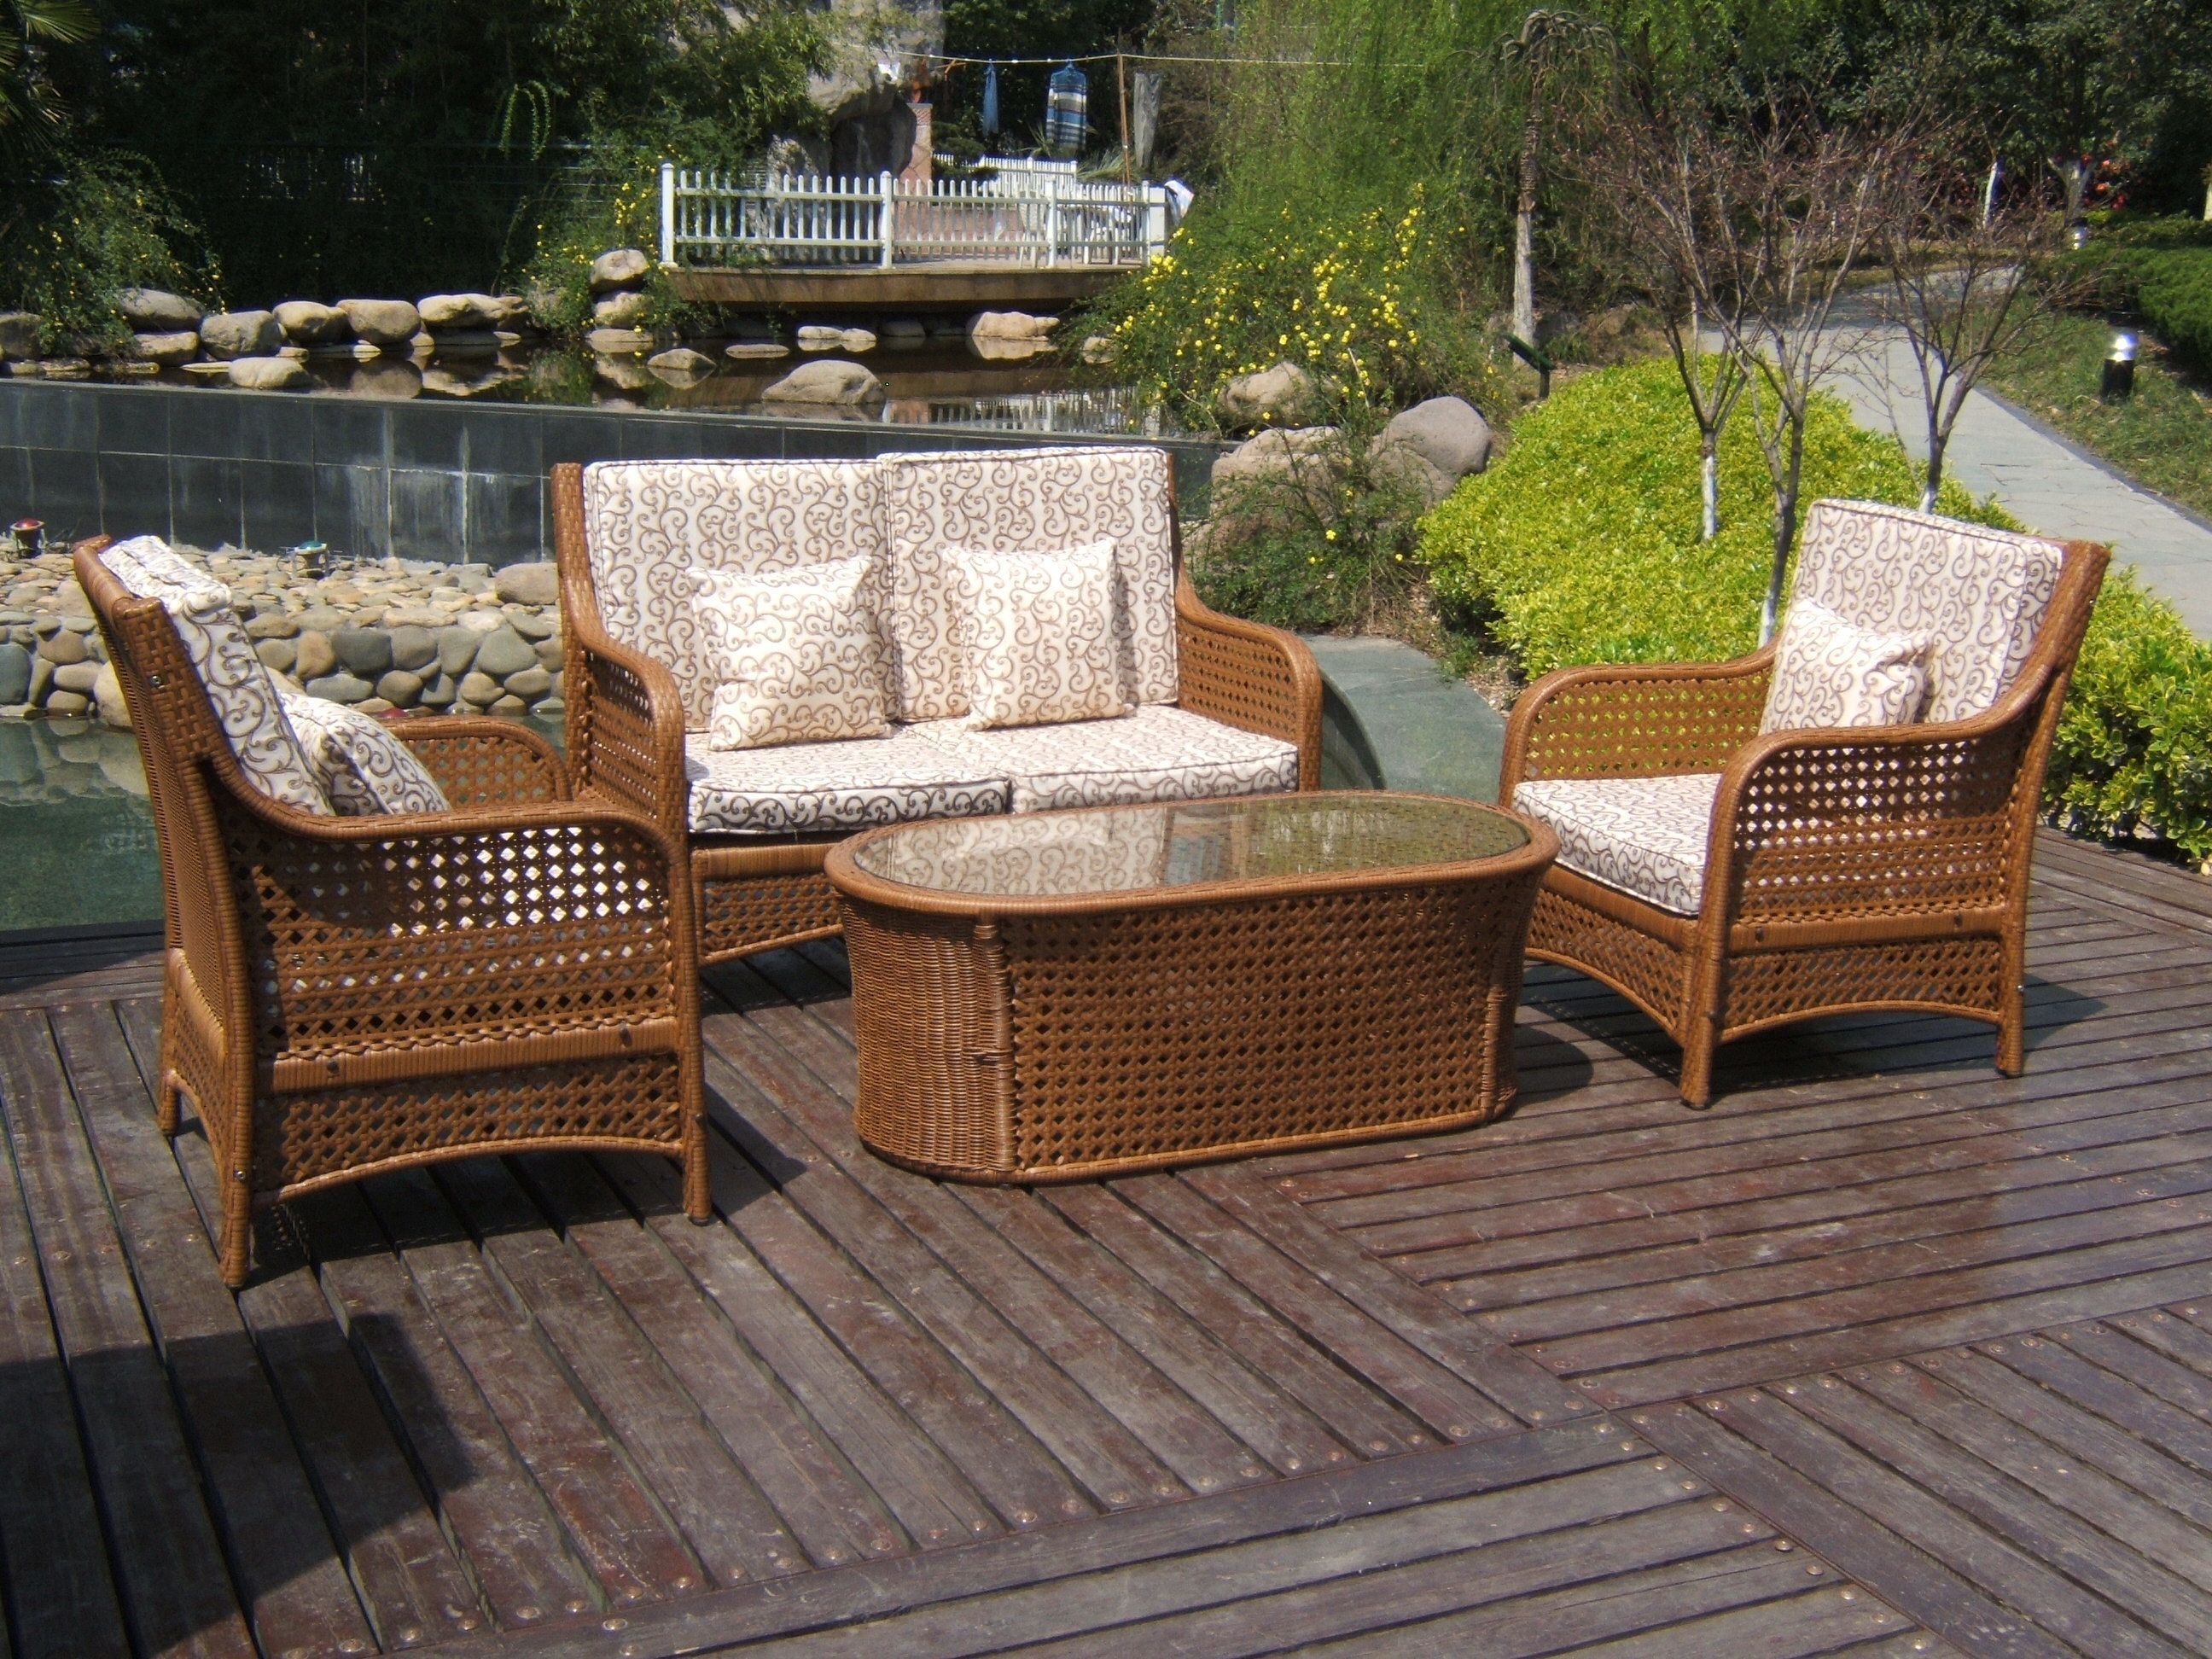 Outdoor patio furniture ideas, option, DIY, sets, lounge areas ...